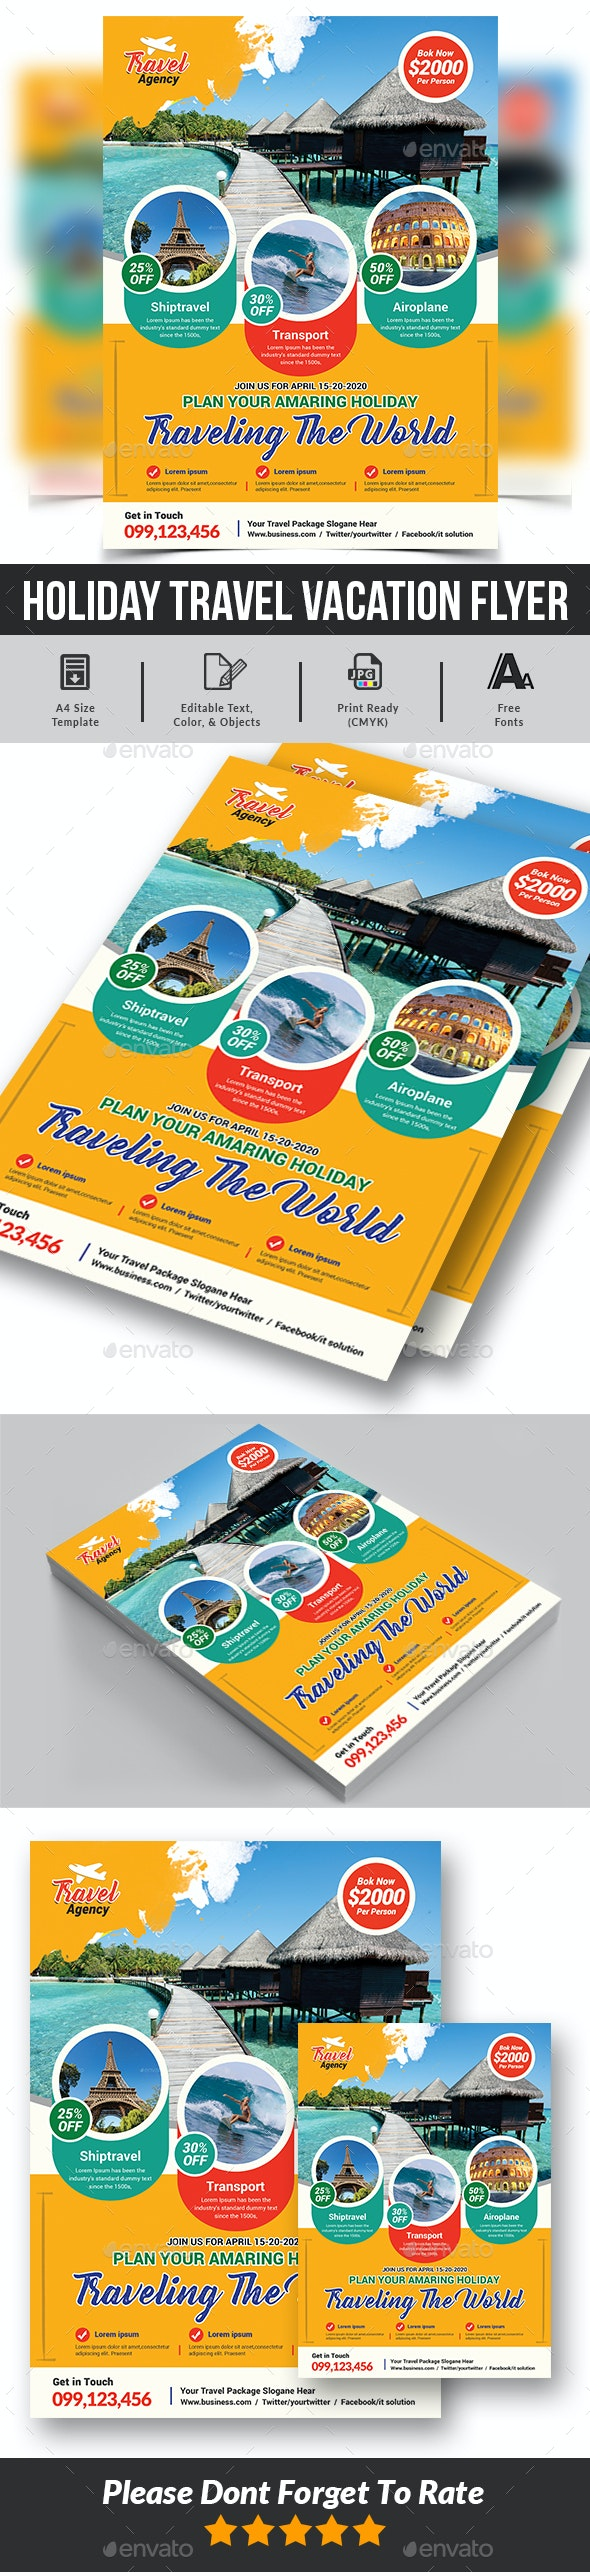 Holiday Travel Vacation Flyer Template - Commerce Flyers